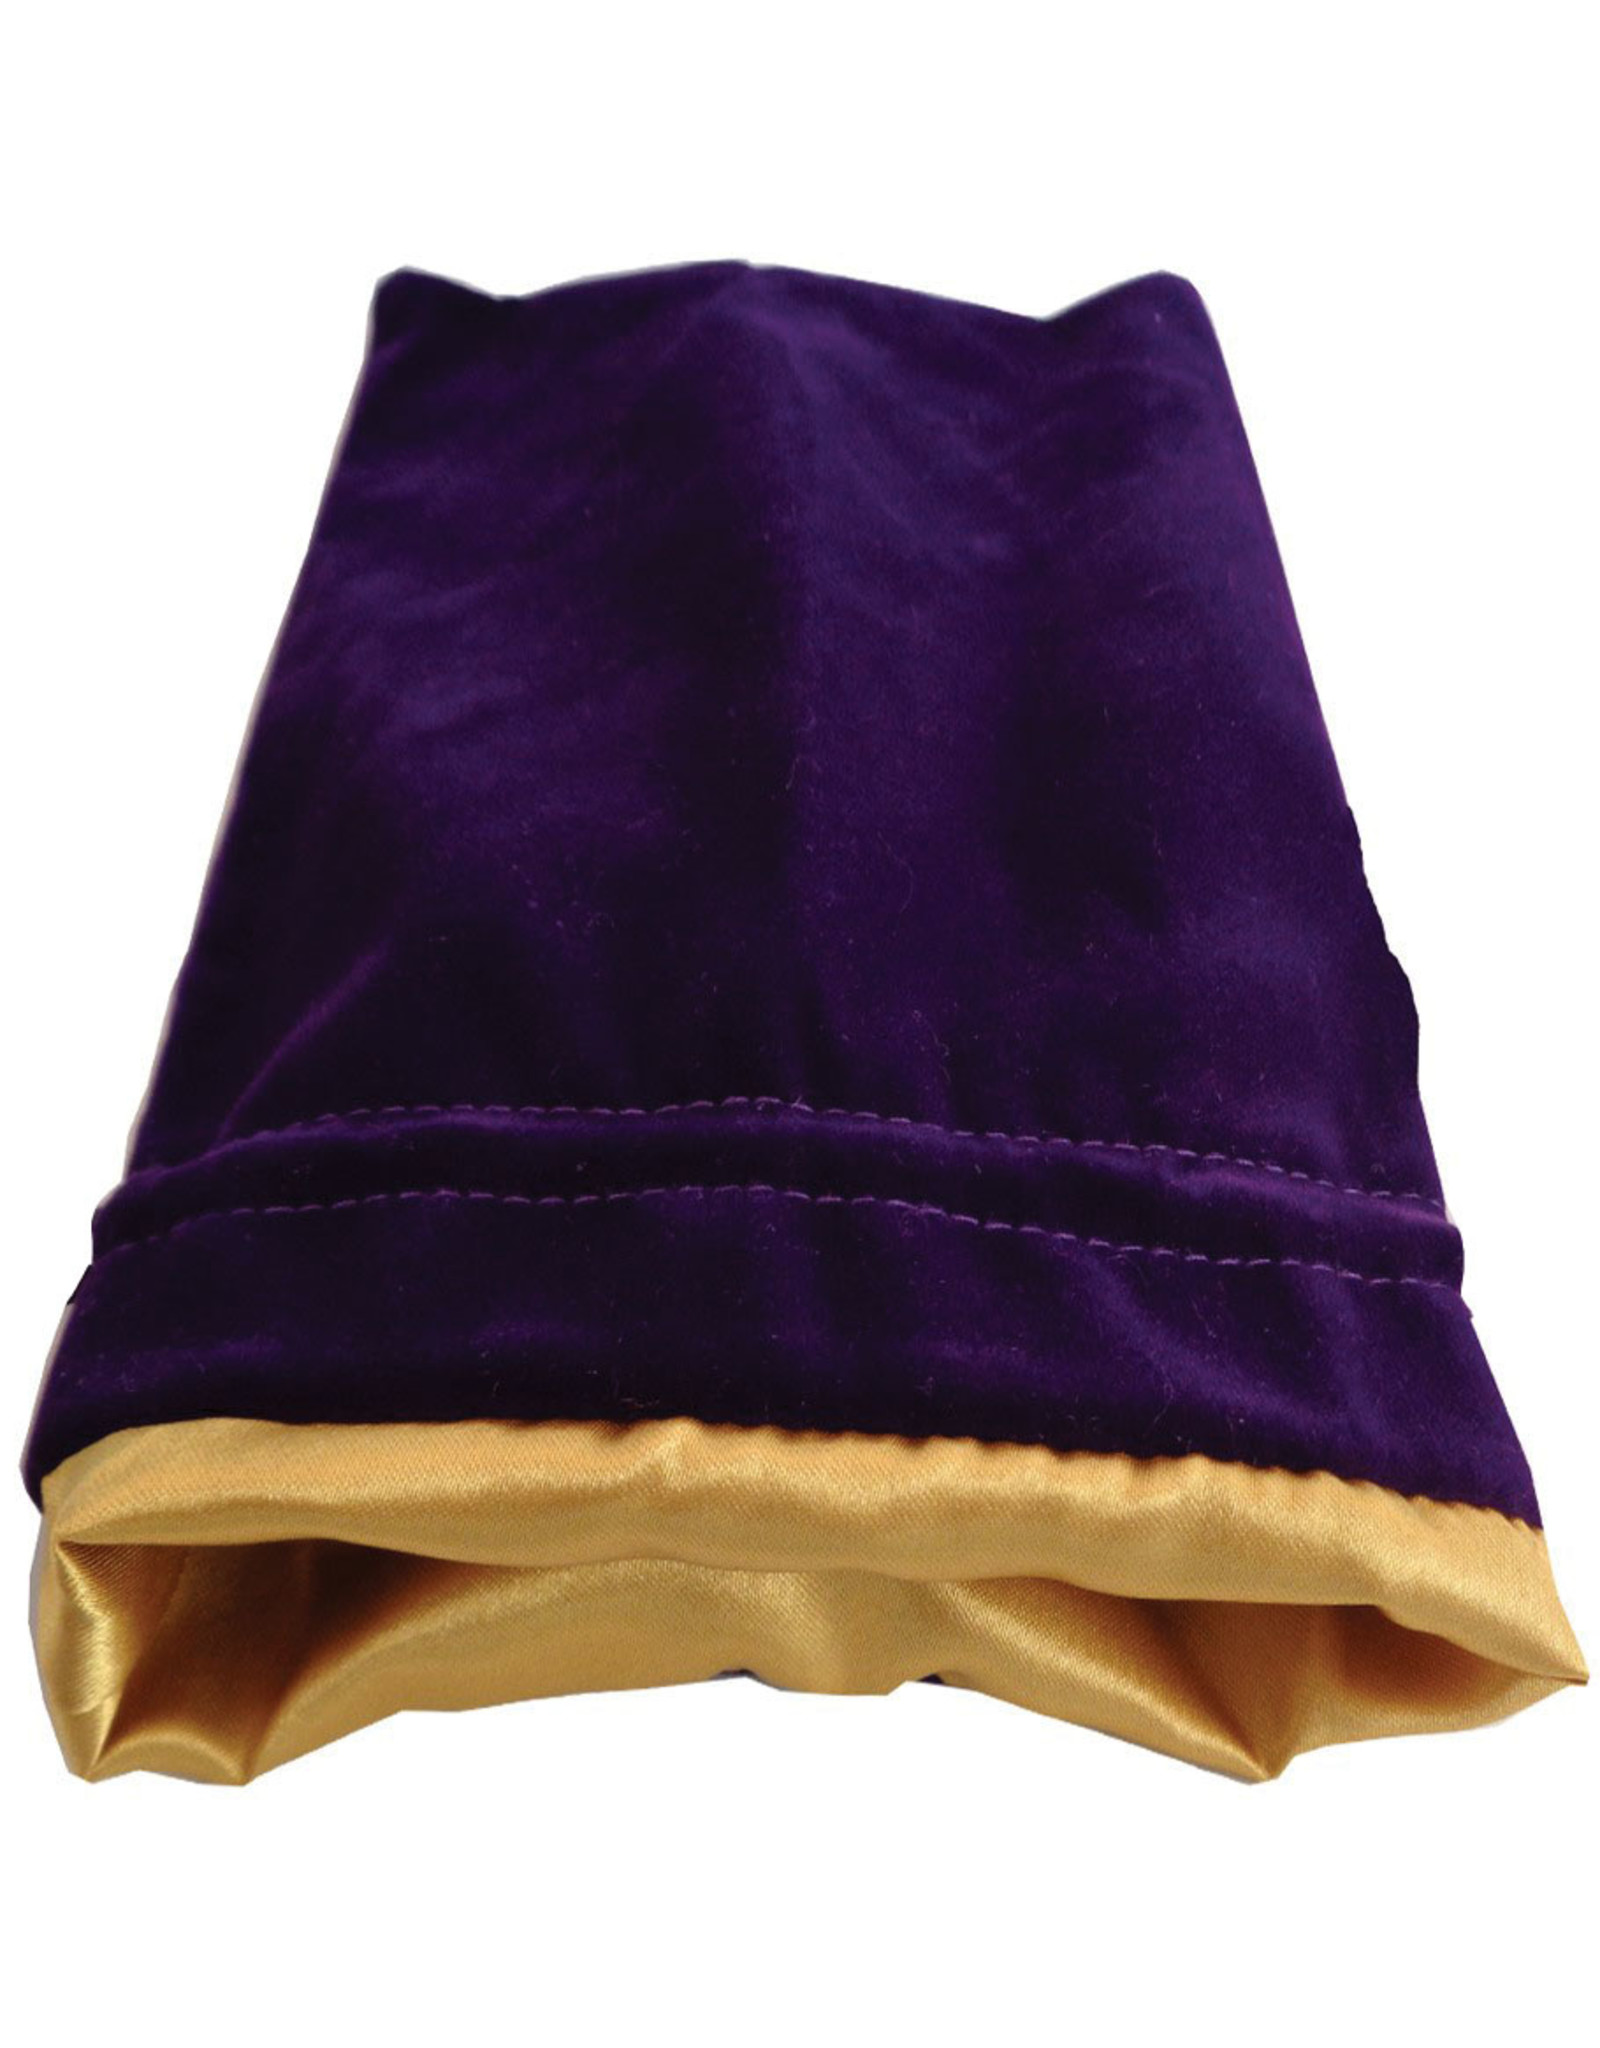 Metallic Dice Games 6in x 8in LARGE Purple Velvet Dice Bag with Gold Satin Lining